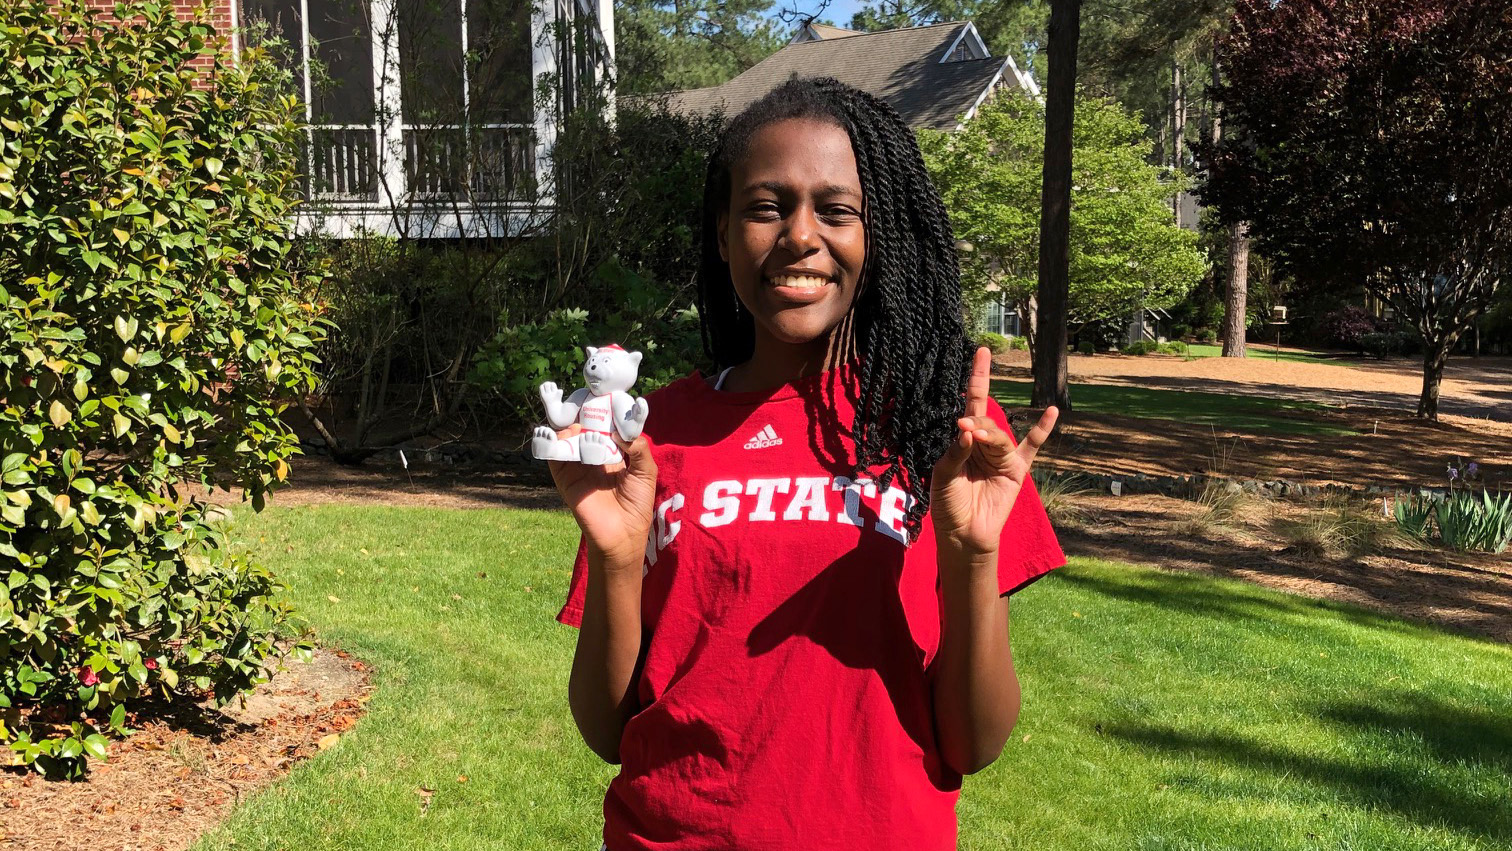 Niasha Kodzai poses outside wearing an NC State T-shirt.